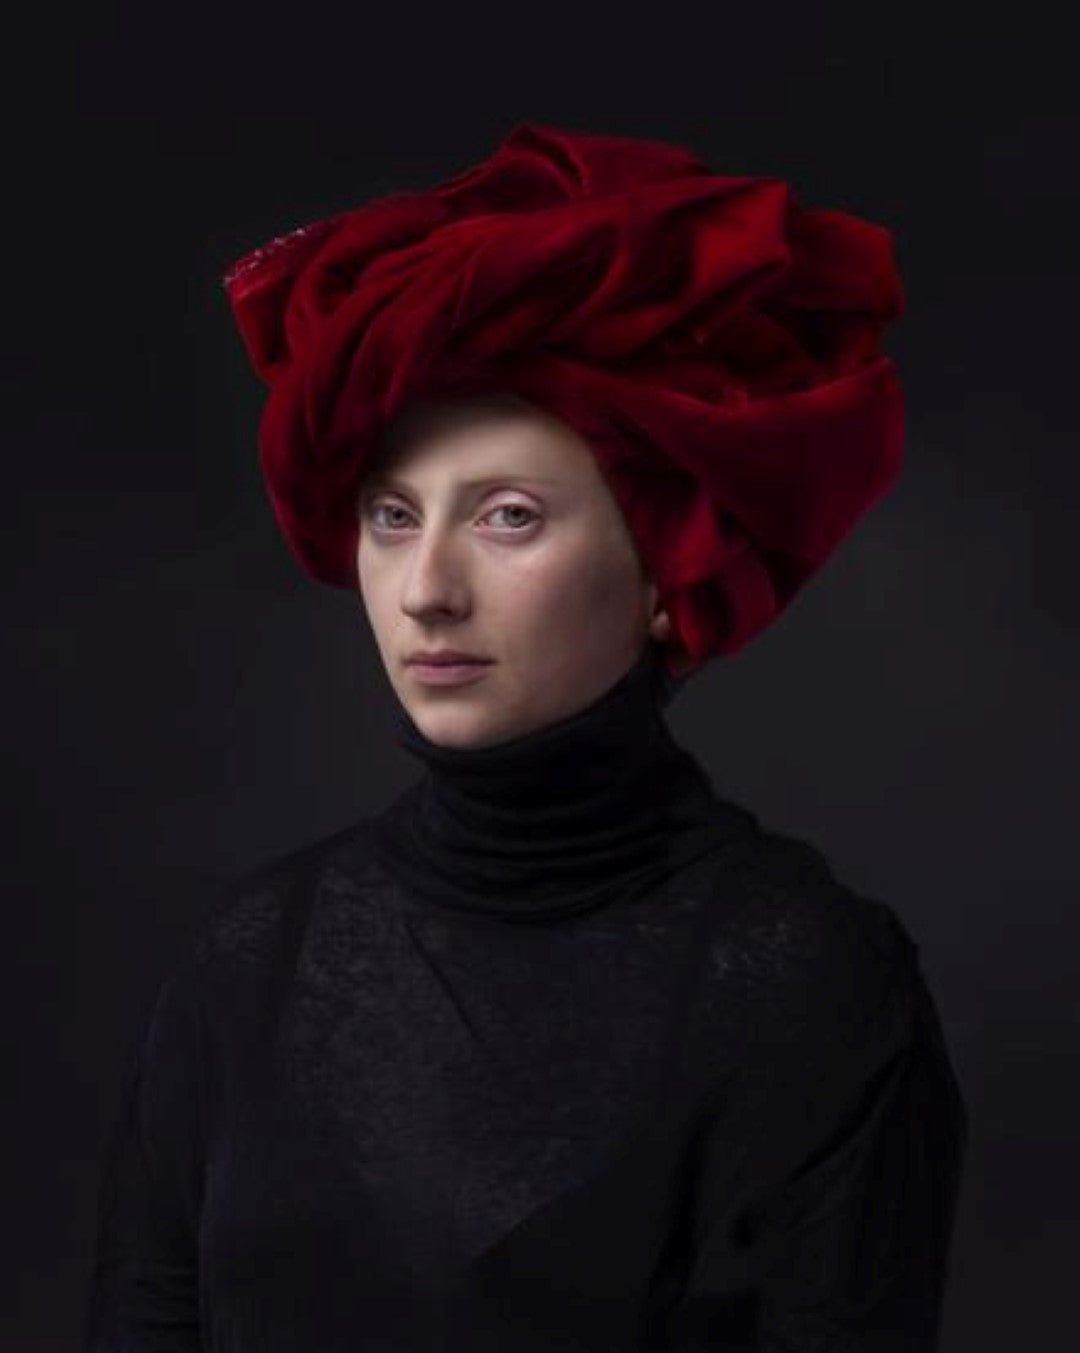 portrait by hendrik kerstens called red turban woman with red cloth on her head